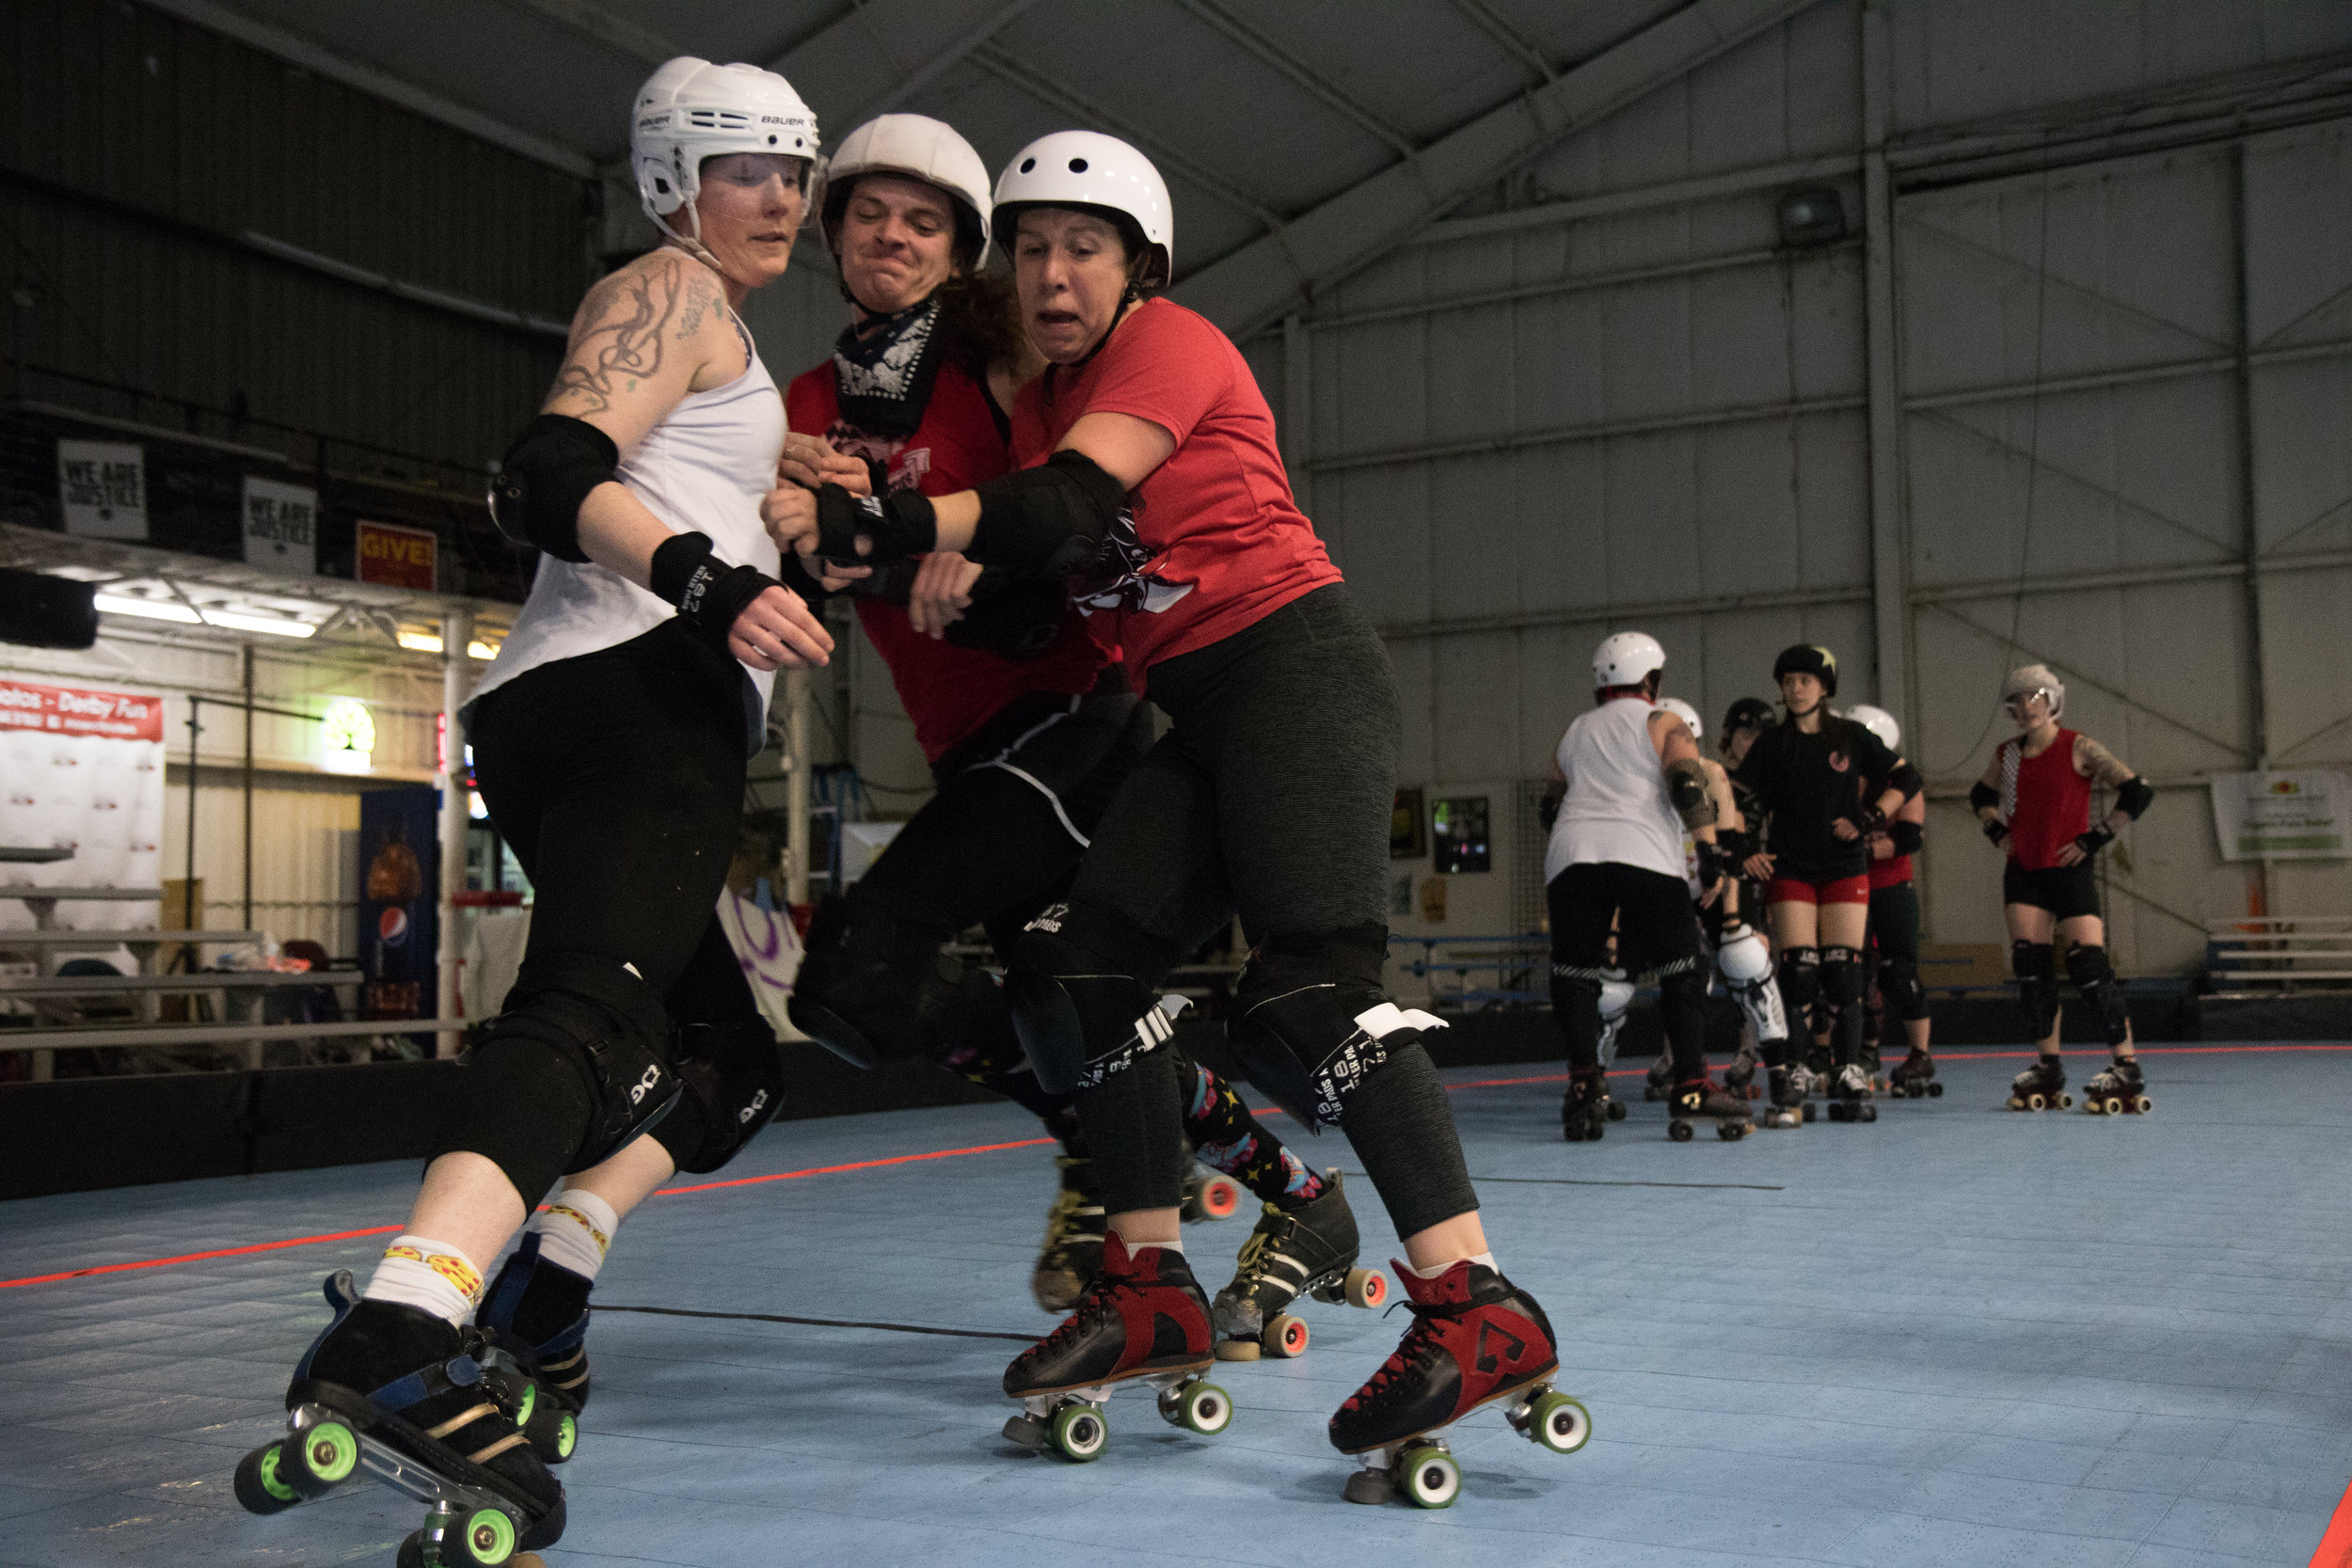 Break Neck Betties jammer ThunderDame tries to push past blockers during a practice drill on Feb. 21, 2017. Portland's Fire Marshal has declared the Oaks Park Hangar where 17 RCR teams practice and compete, unsafe.The league needs to install a costly sprinkler system, limit attendance at games, or find new venue by July 2018.